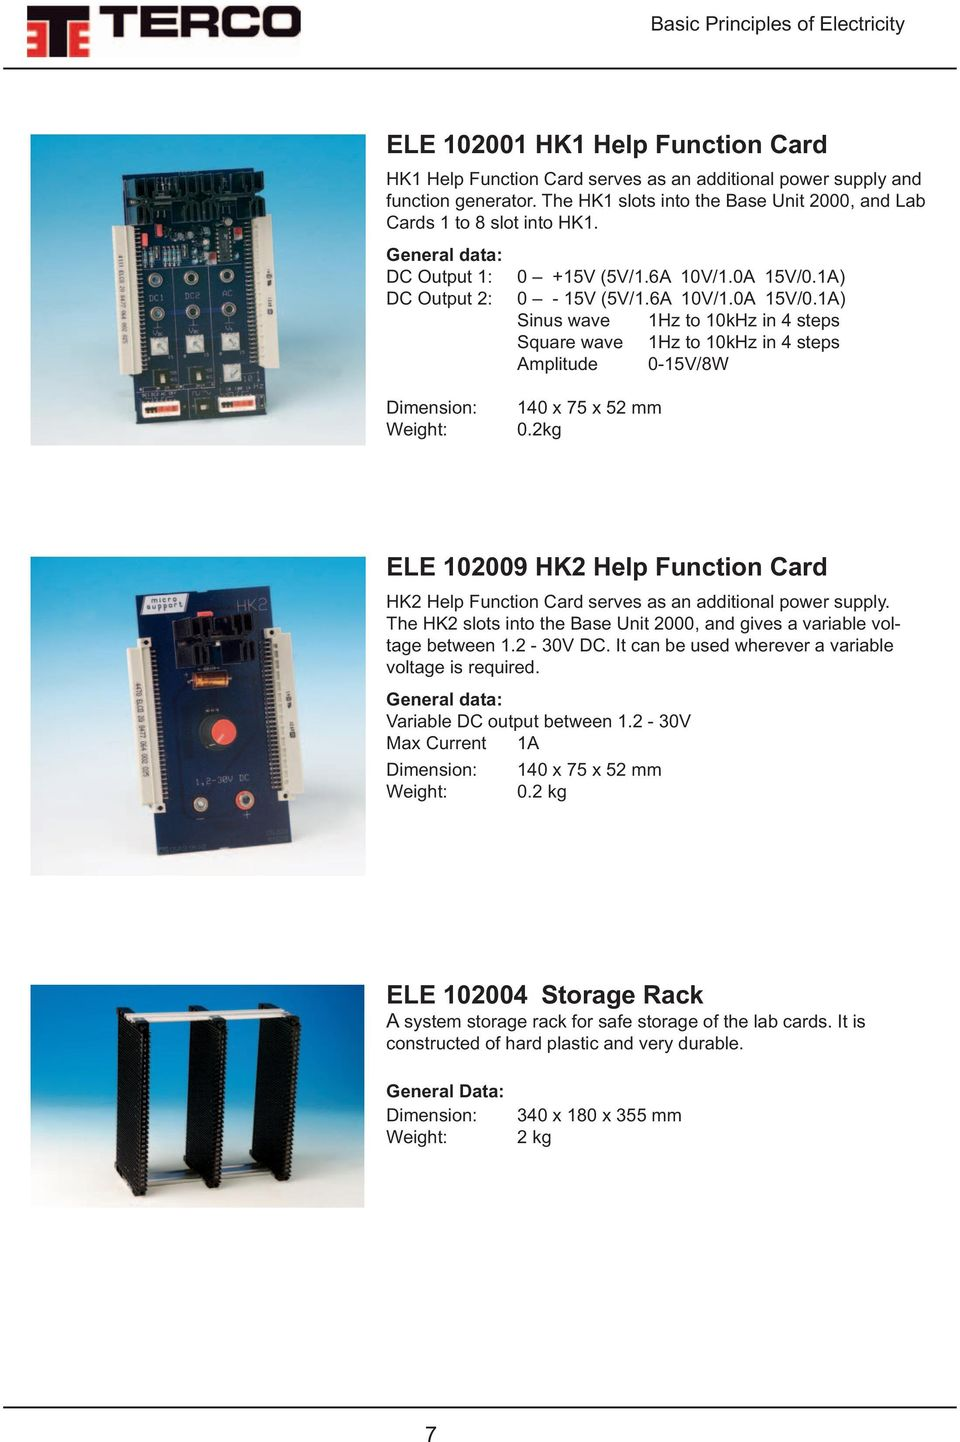 2kg ELE 102009 HK2 Help Function Card HK2 Help Function Card serves as an additional power supply. The HK2 slots into the Base Unit 2000, and gives a variable voltage between 1.2-30V DC.